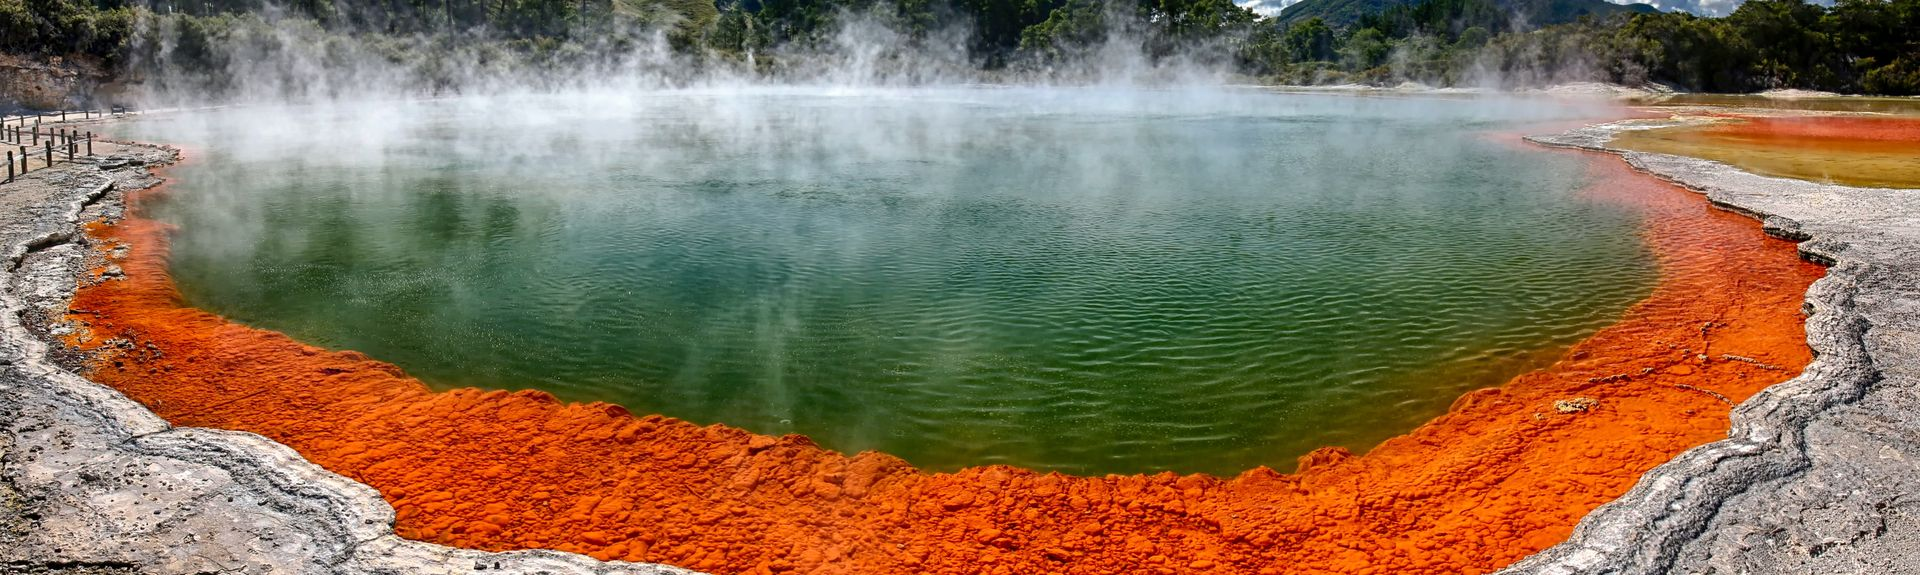 Rotorua, Bay of Plenty, New Zealand